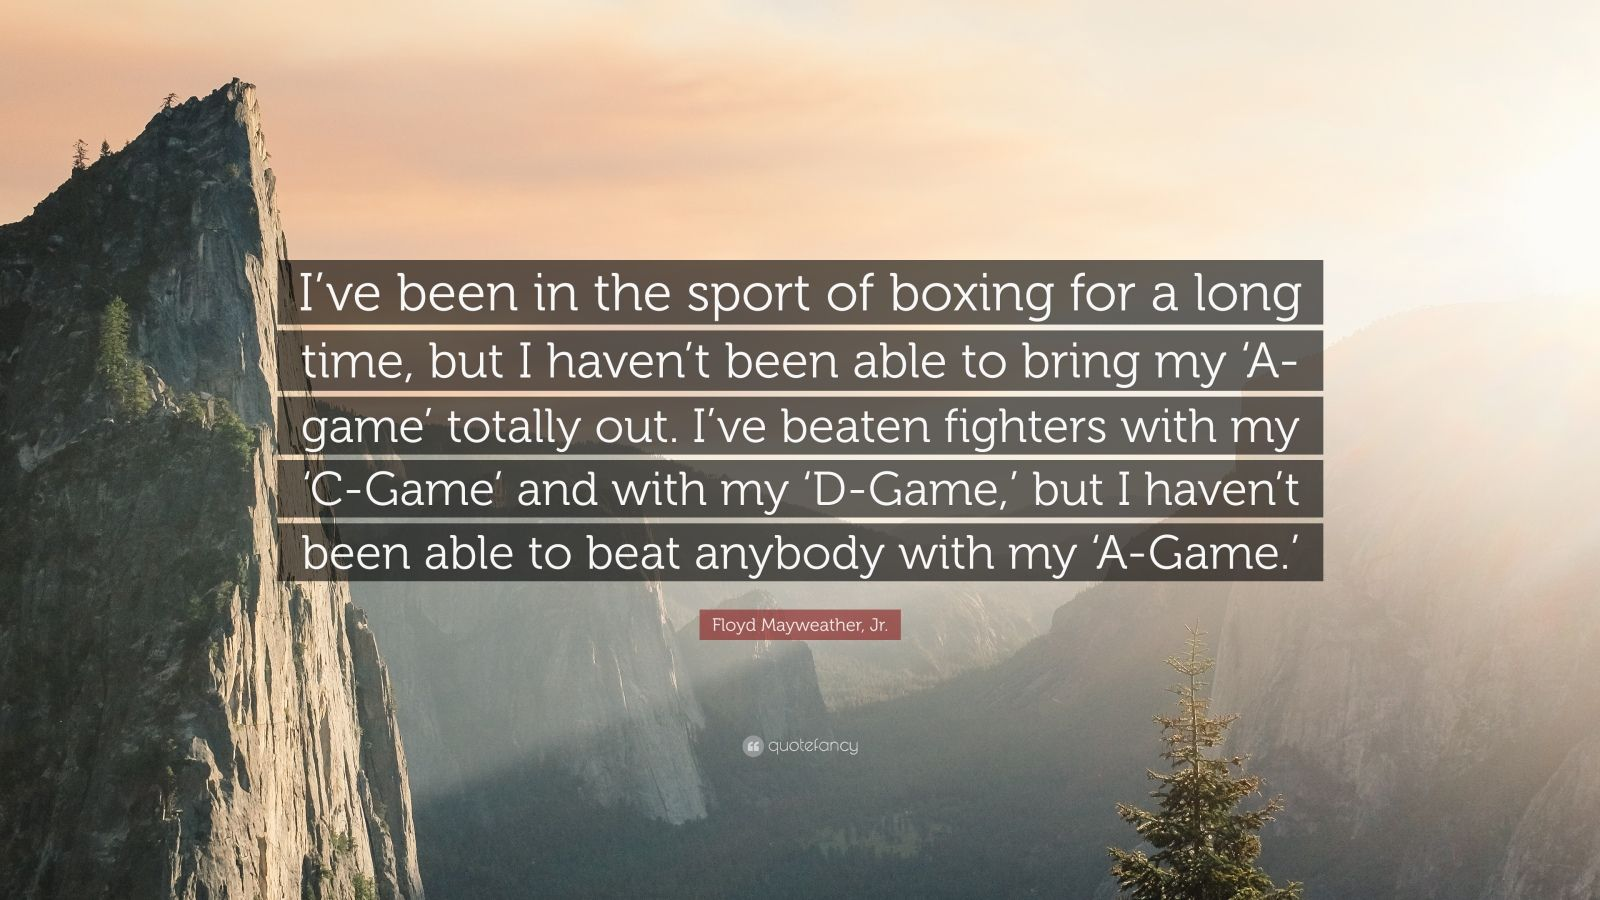 """Floyd Mayweather, Jr. Quote: """"I've been in the sport of boxing for a long time, but I haven't been able to bring my 'A-game' totally out. I've beaten fighters with my 'C-Game' and with my 'D-Game,' but I haven't been able to beat anybody with my 'A-Game.'"""""""